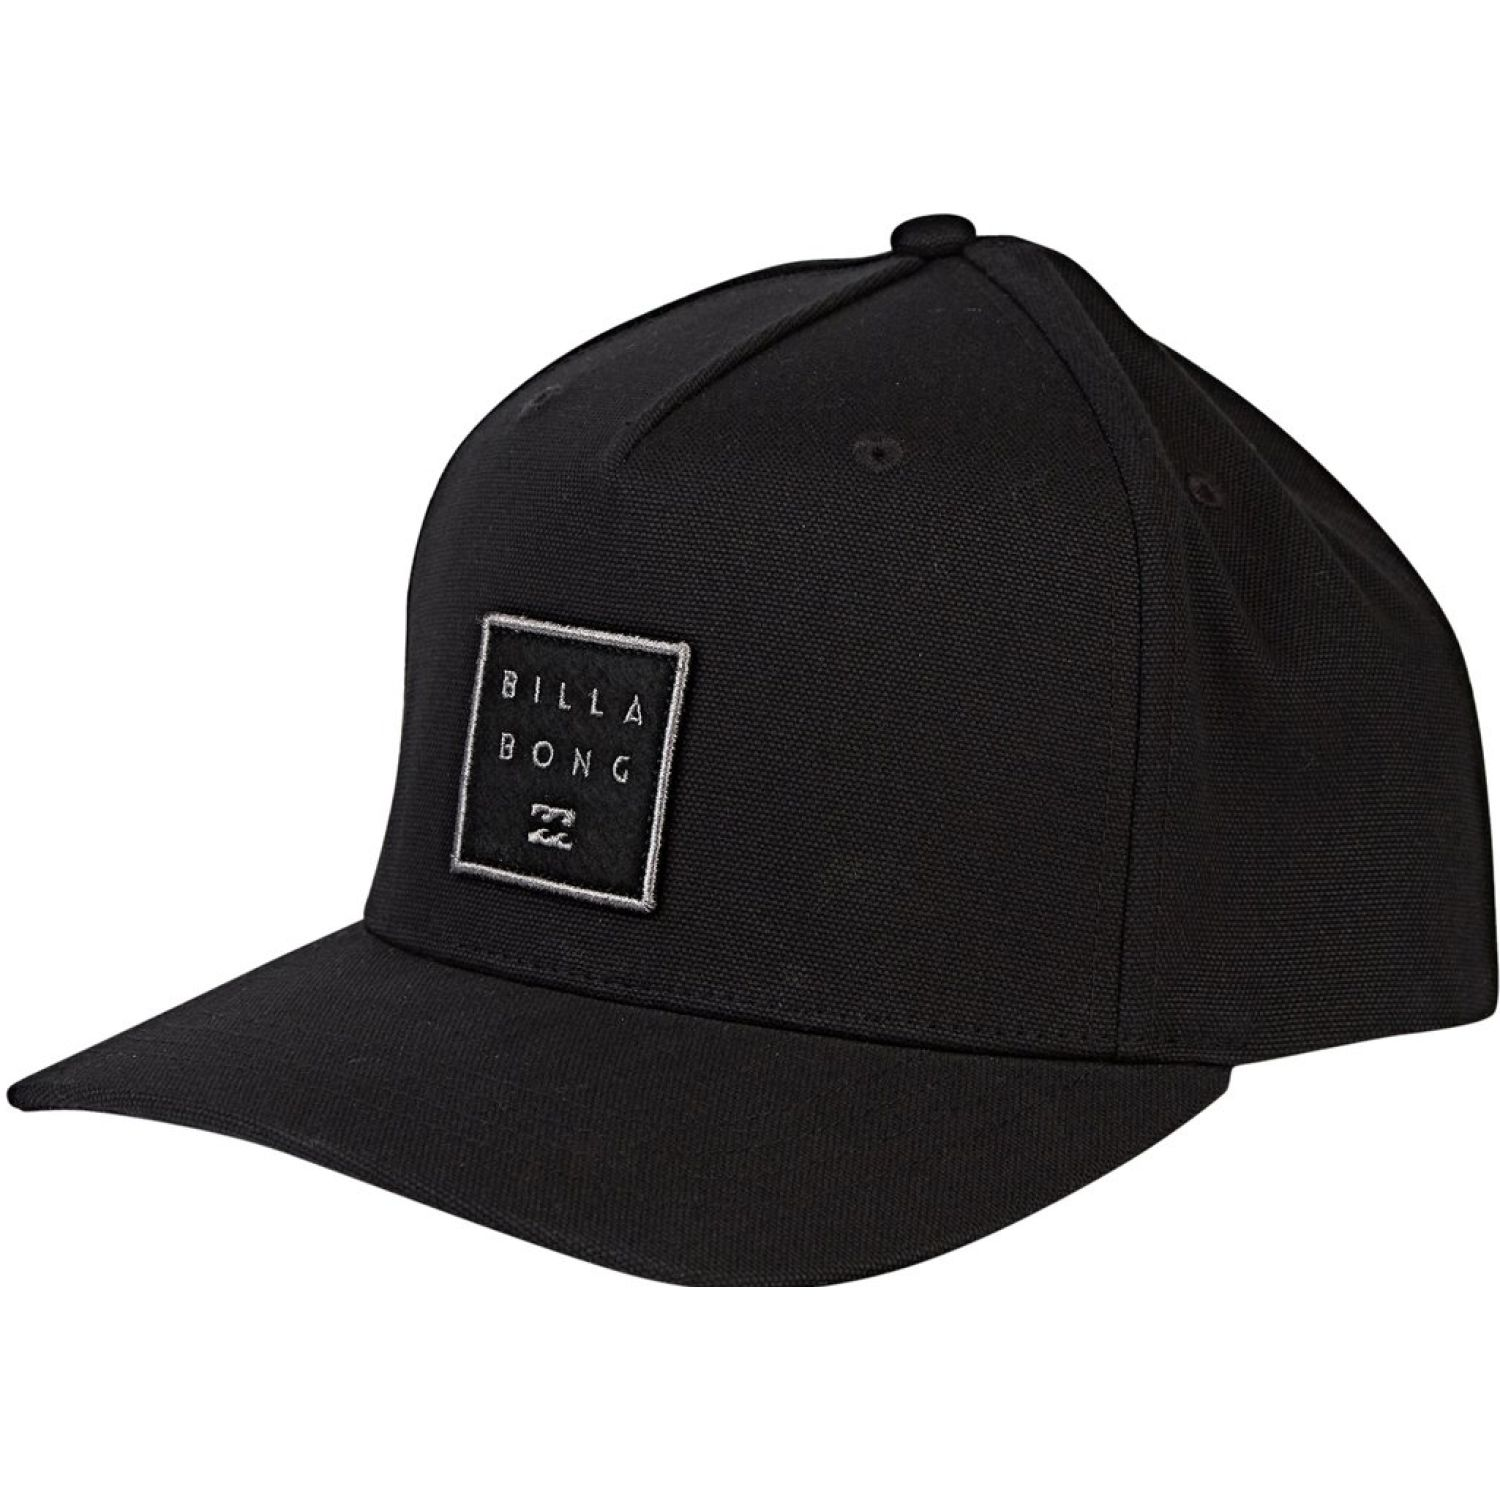 Billabong stacked snapback Negro Gorros de Baseball